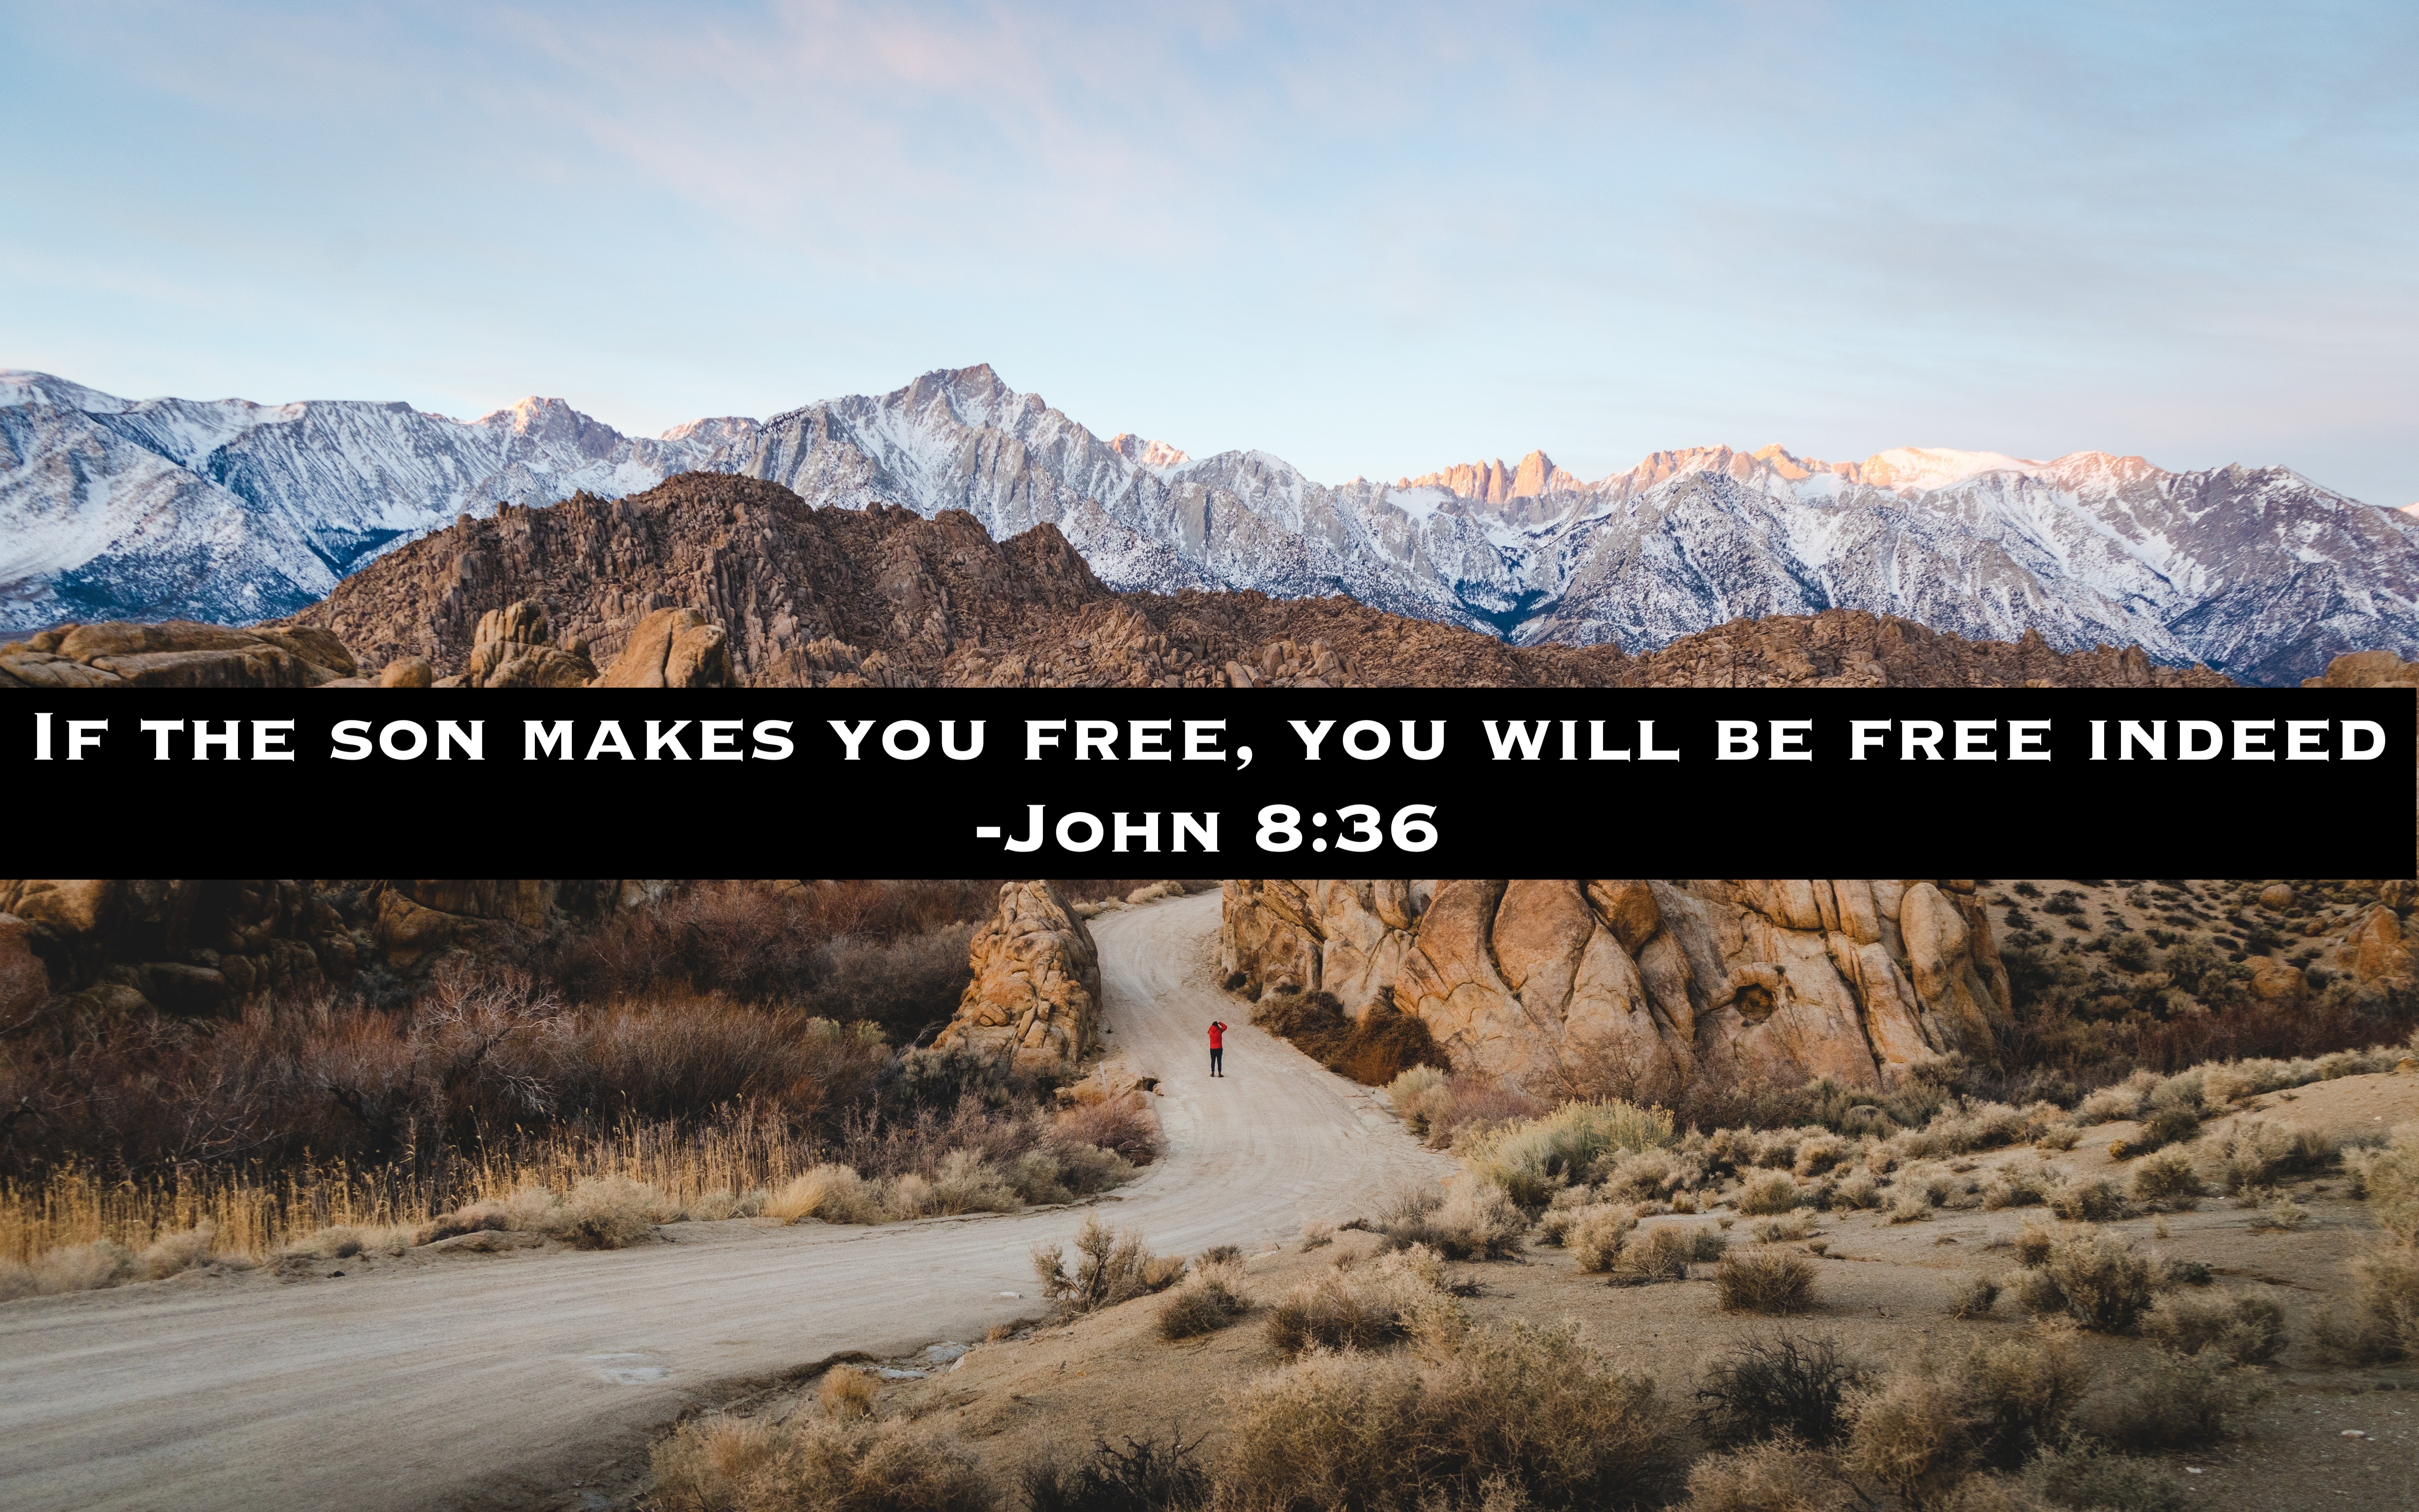 What is Exodus 90 and why should I do it freedom John 8:36 FAQ